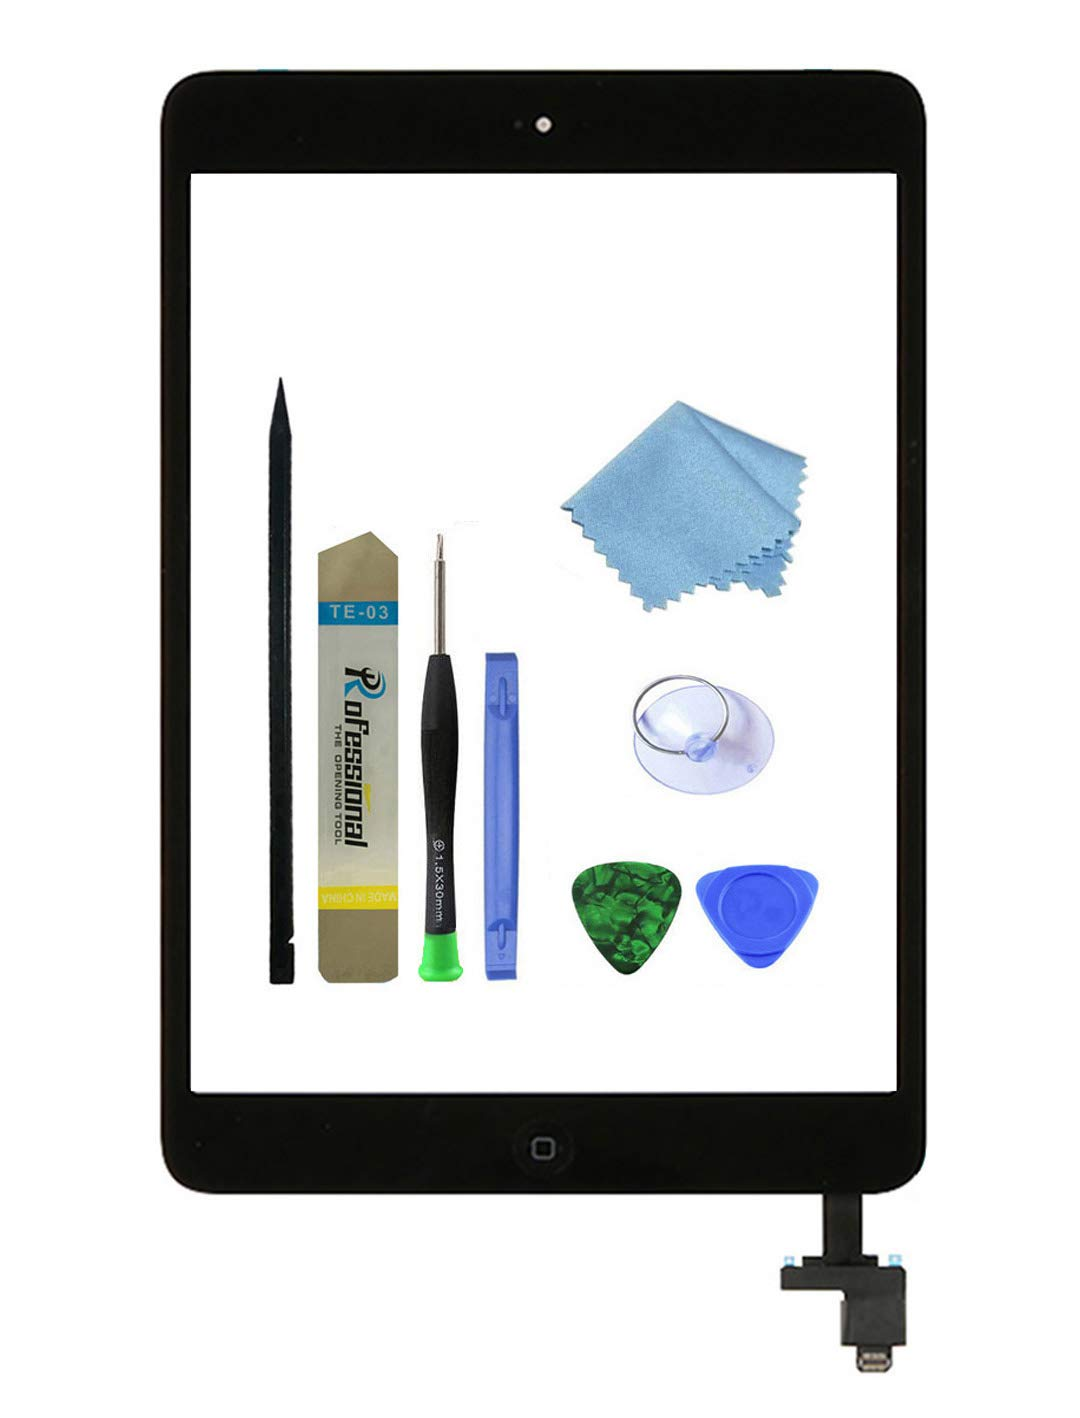 Zentop Black Touch Screen Digitizer for iPad Mini 1/2 Complete Assembly with IC Chip,Home Button,Camera Holder, Preinstalled Adhesive,Repair Toolkit.